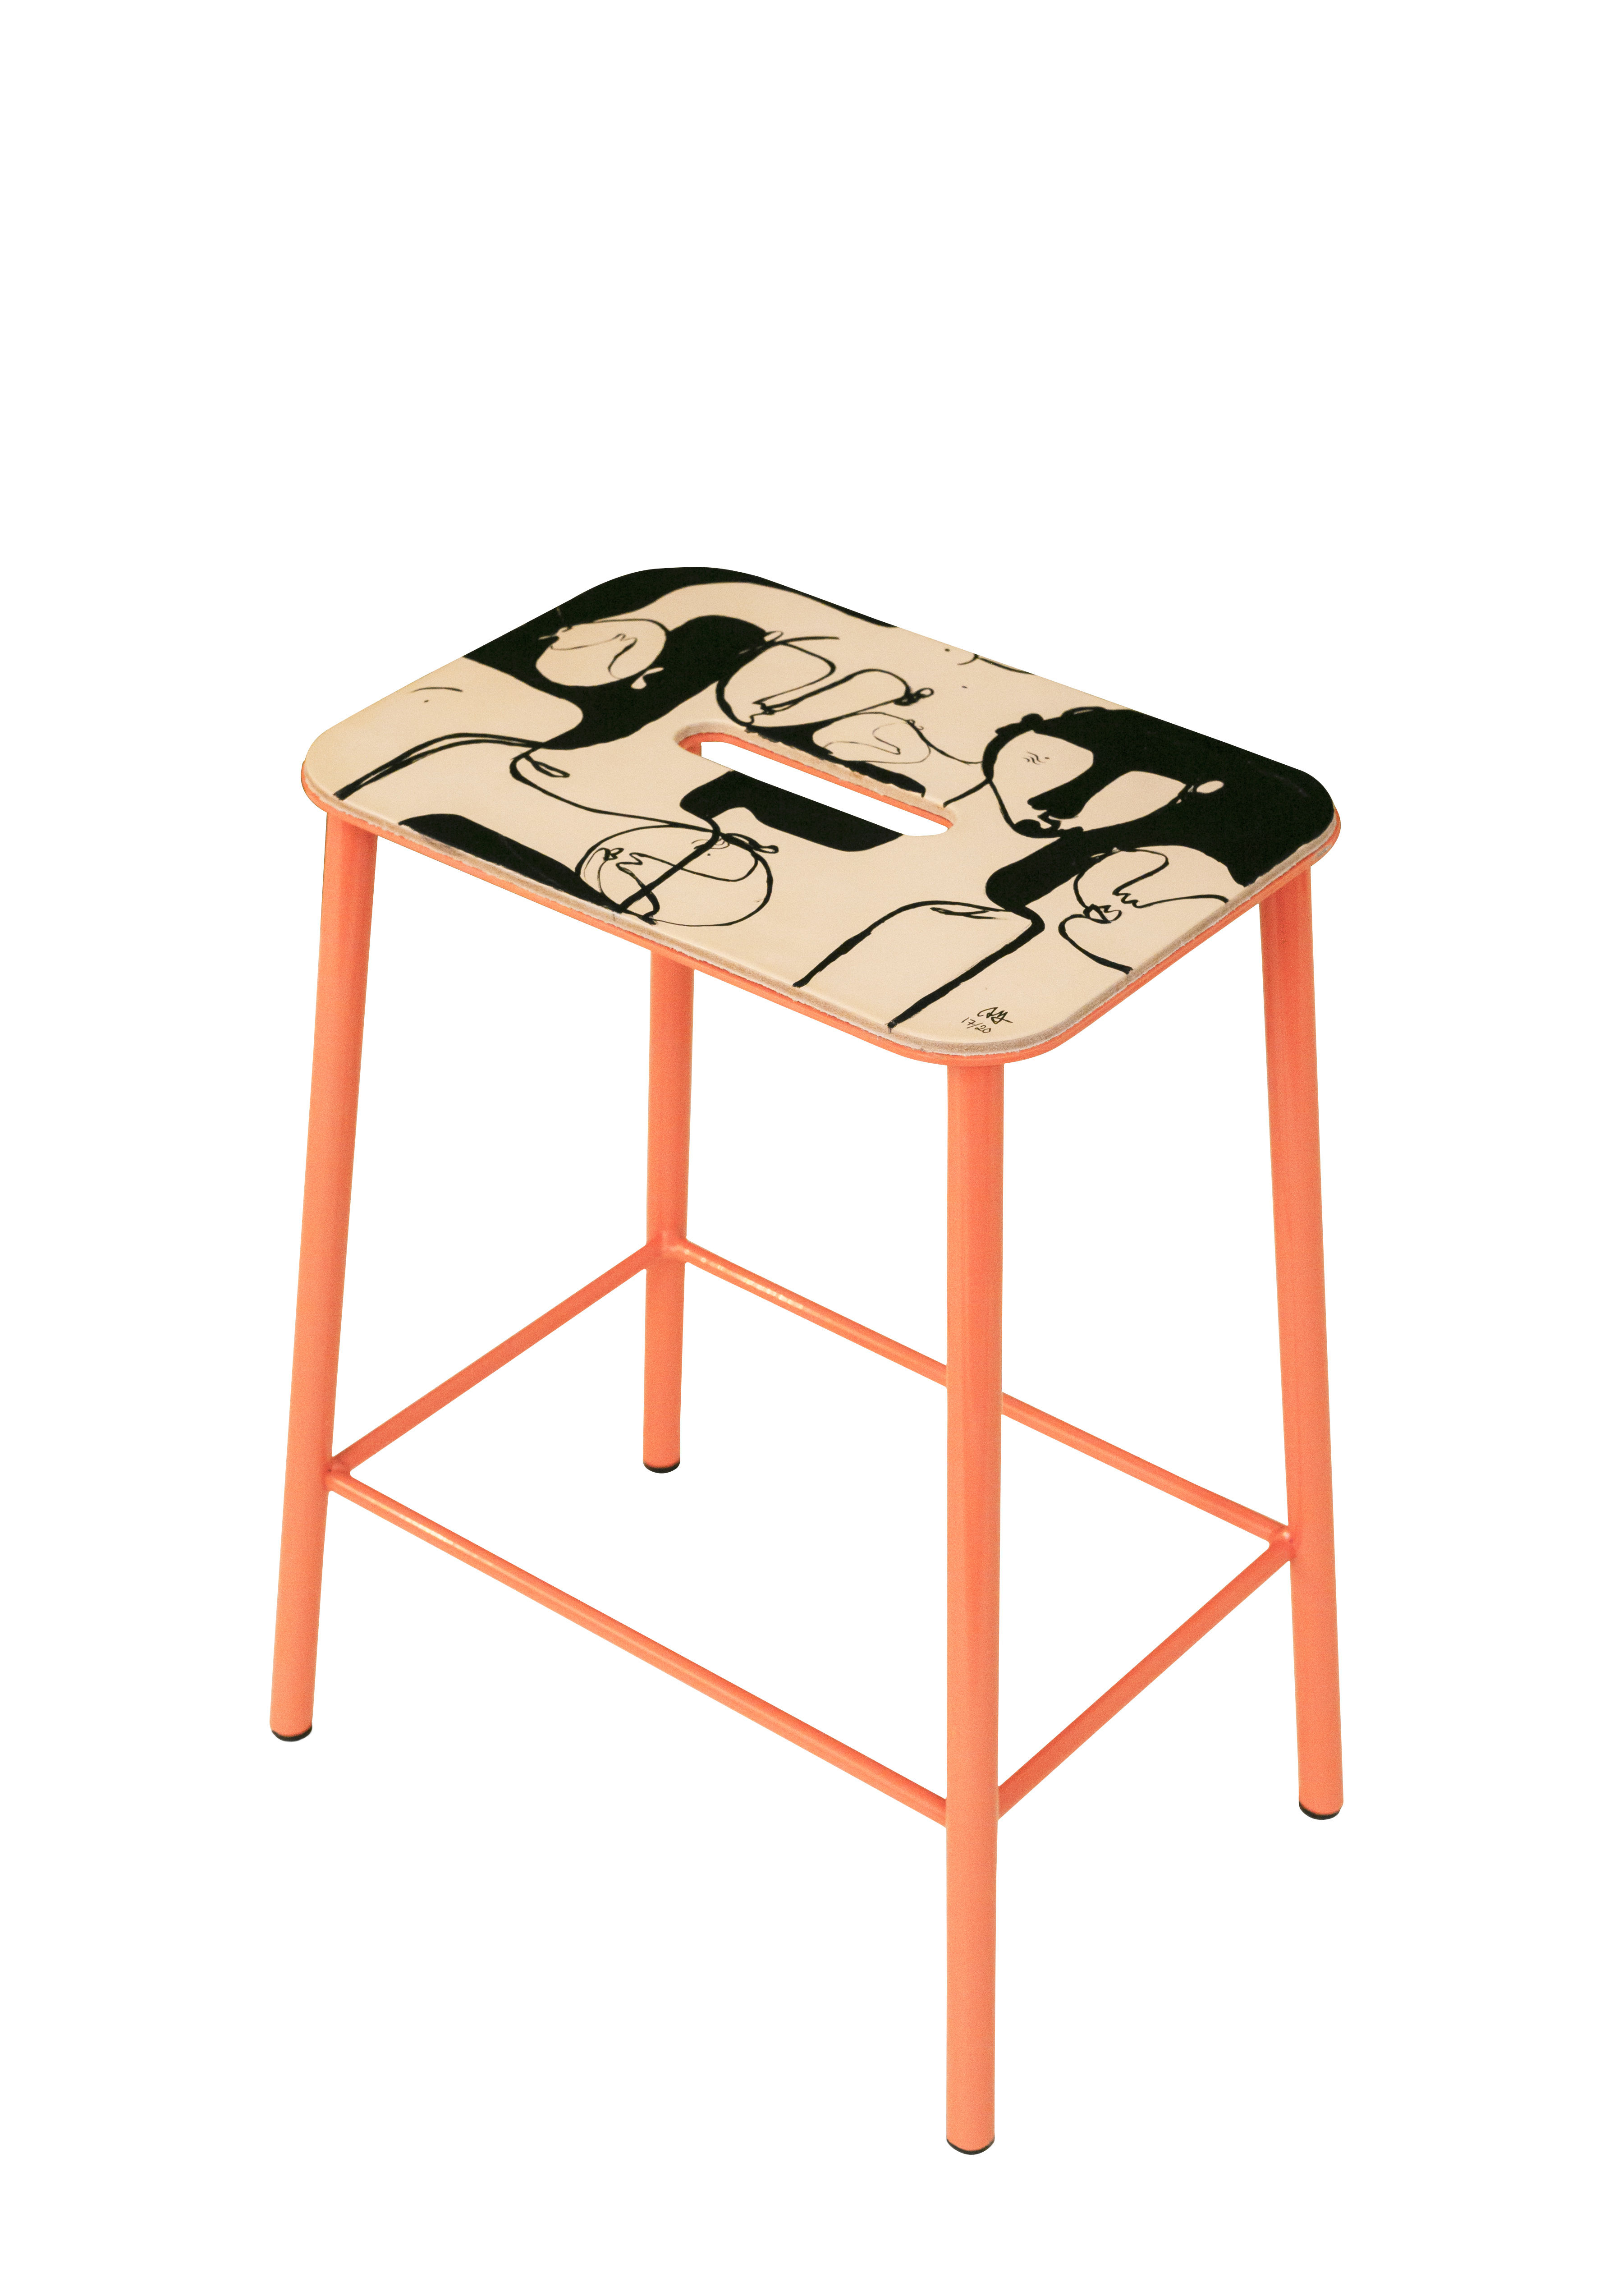 Furniture - Stools - Adam Cuir by Anna Mörner Stool - / H 50 cm - Limited, numbered edition - 20 years of MID by Frama  - Pink - Lacquered steel, Leather